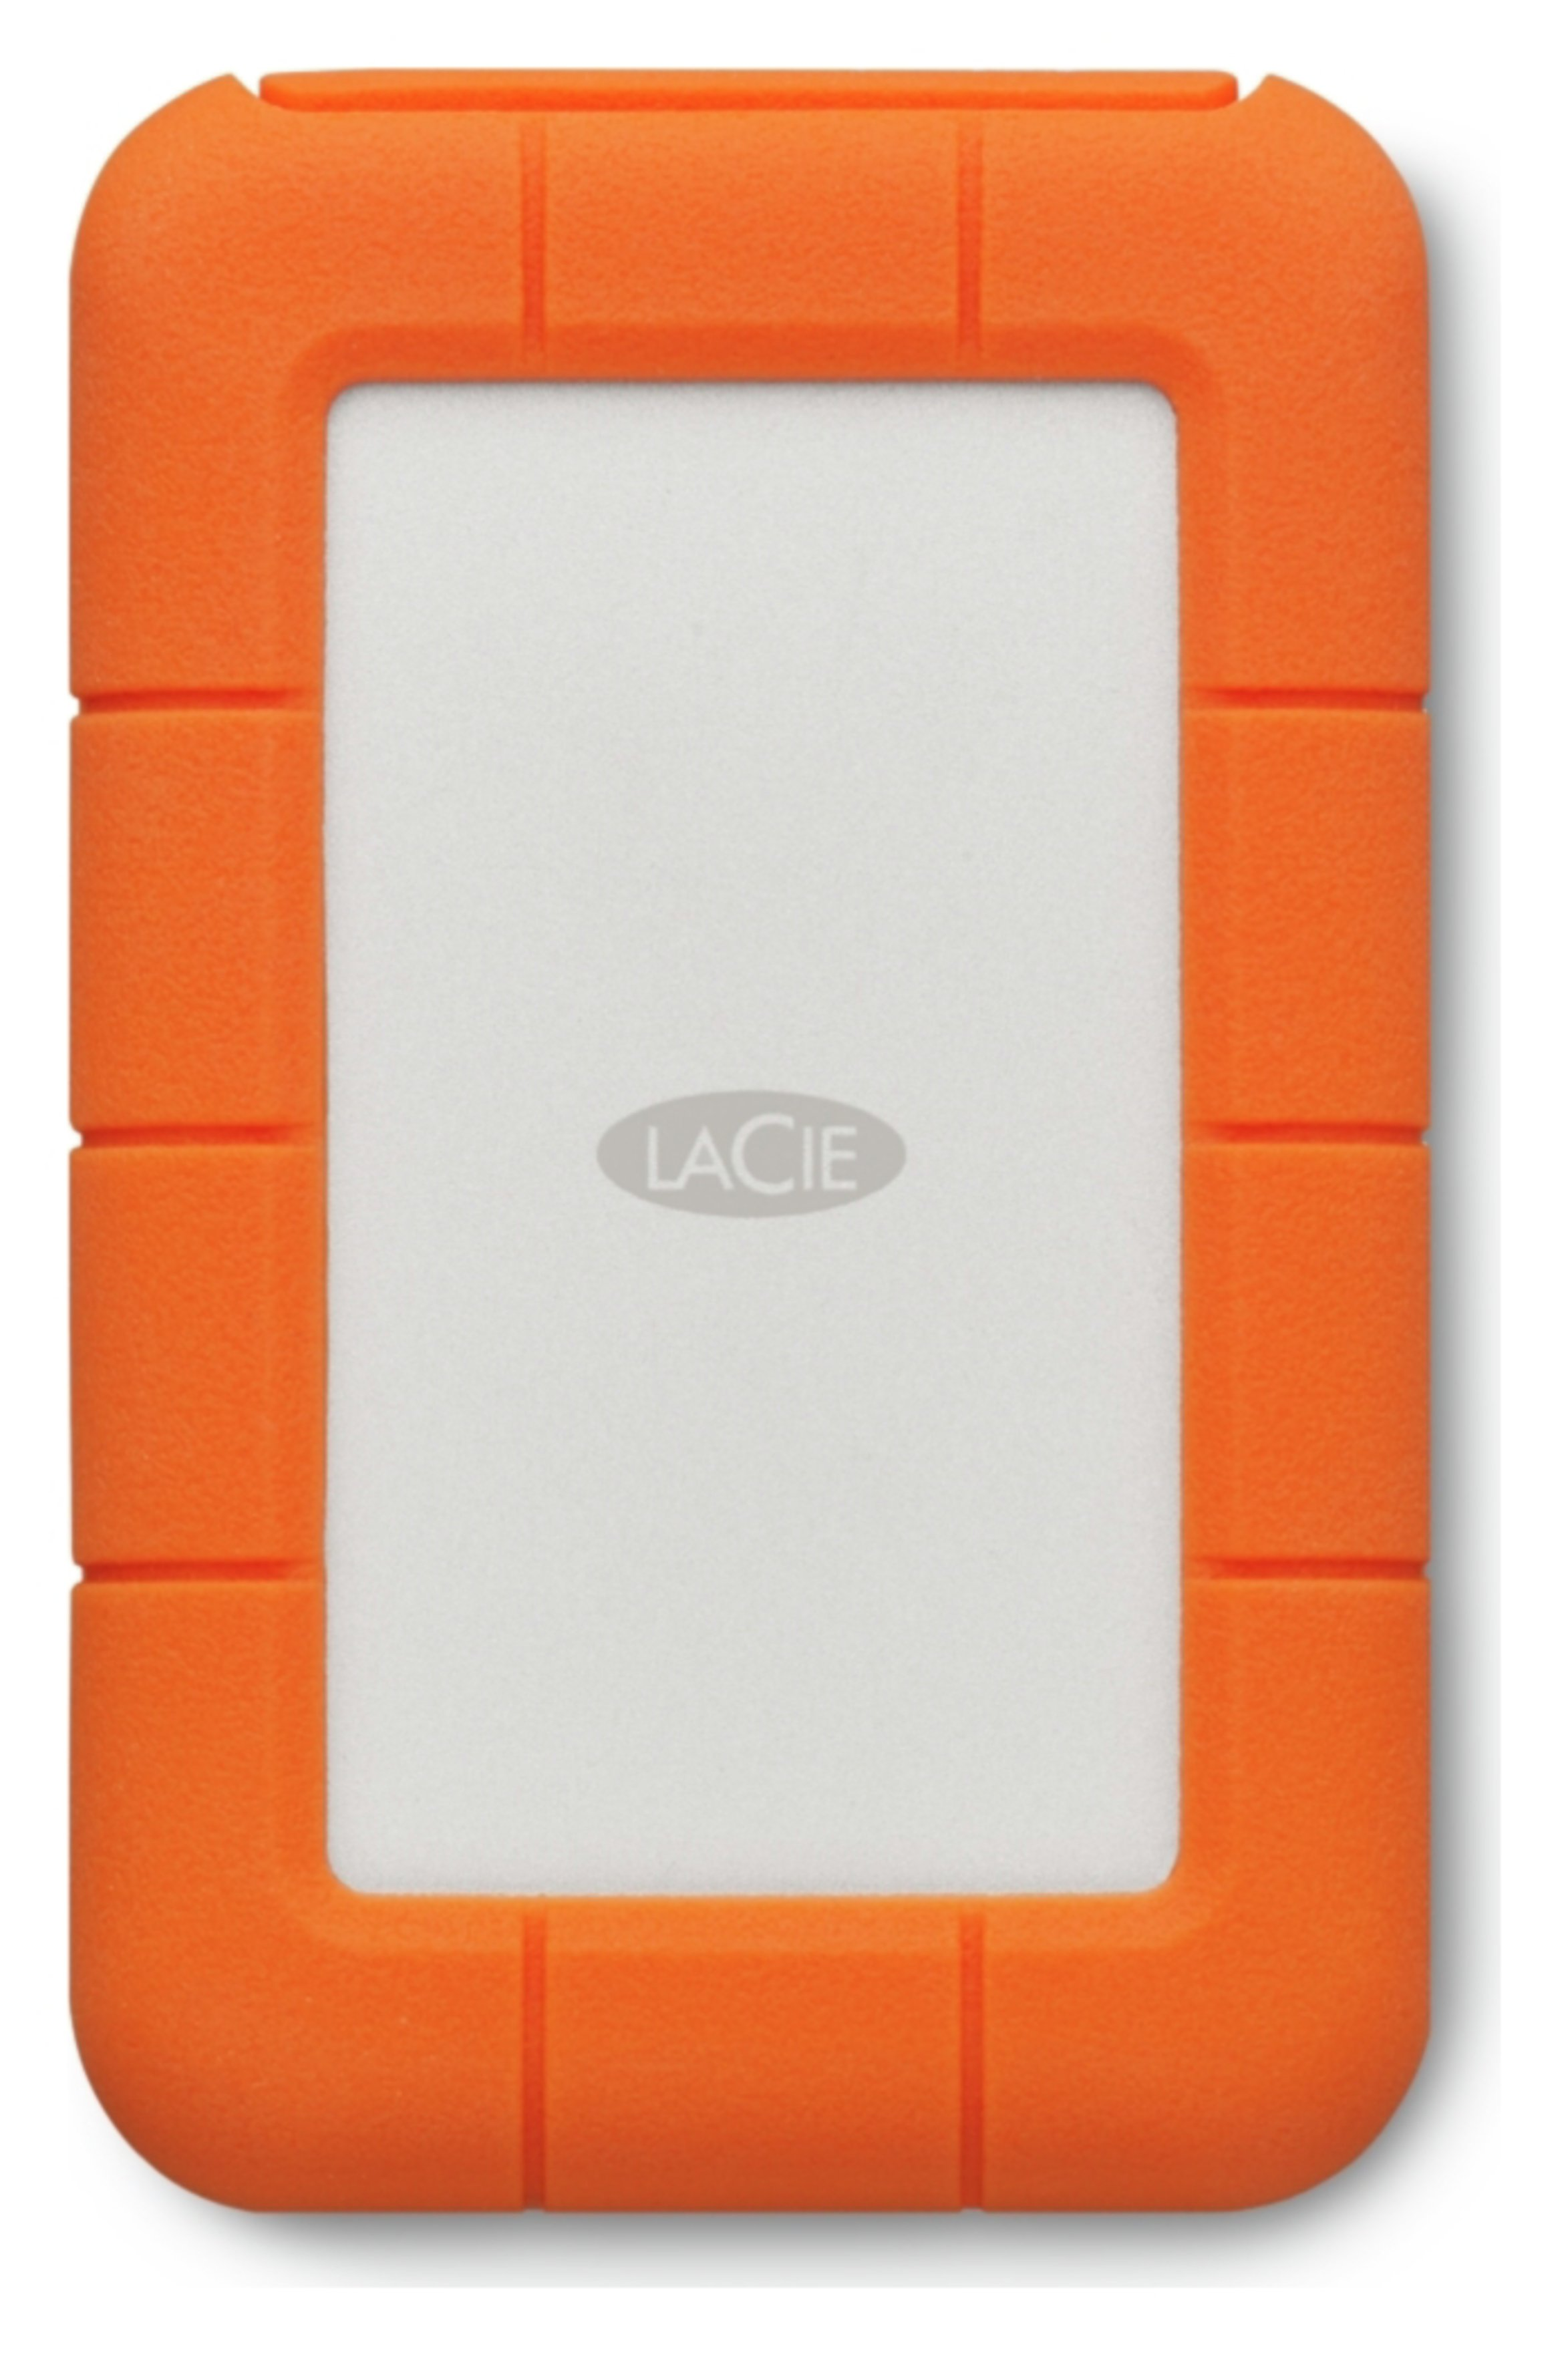 Compare prices for Lacie Rugged Thunderbolt Stev1000400